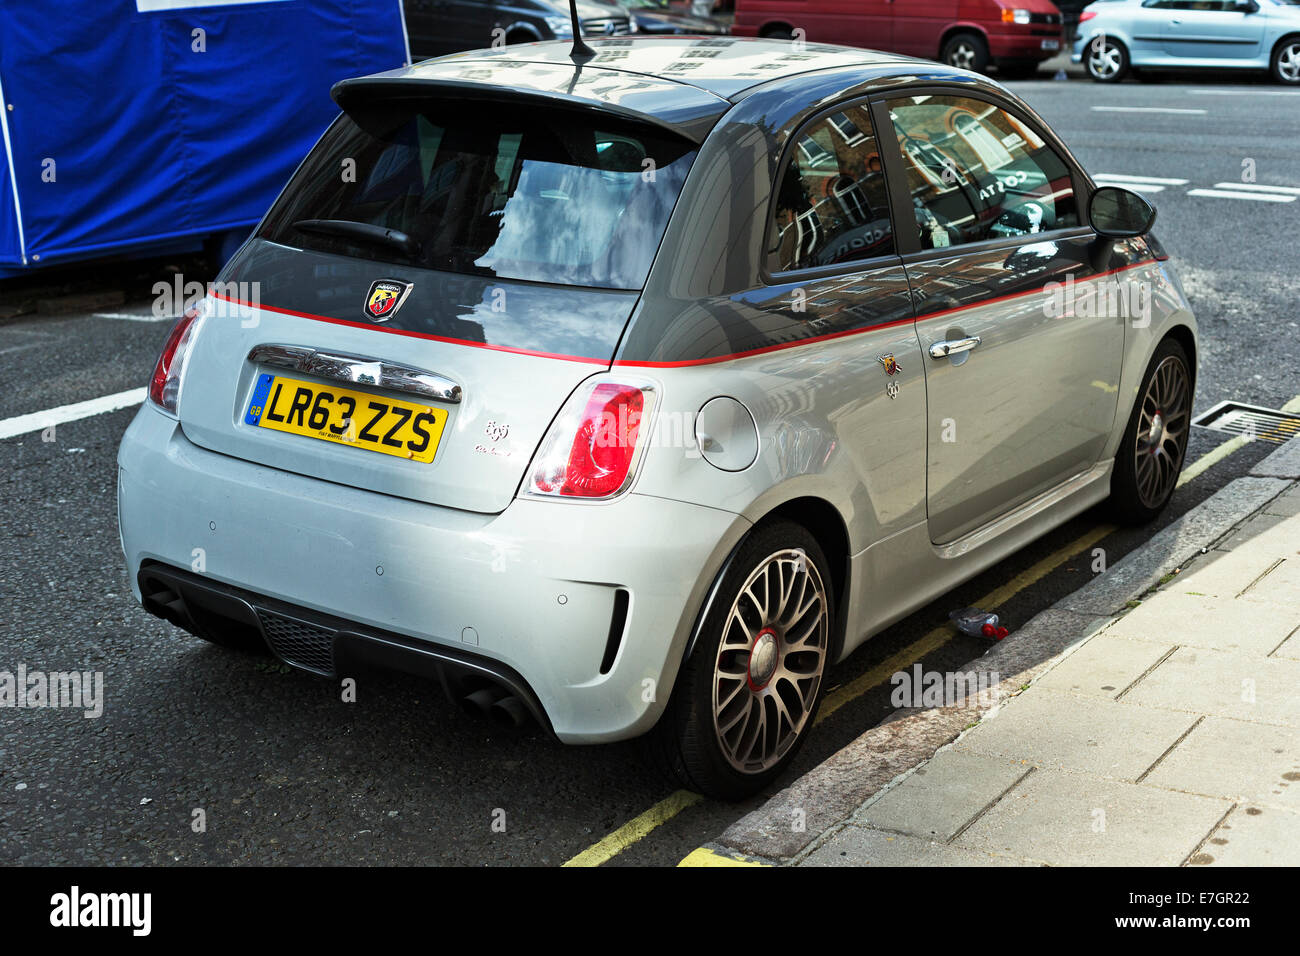 Abarth 595 Stock Photos & Abarth 595 Stock Images - Alamy